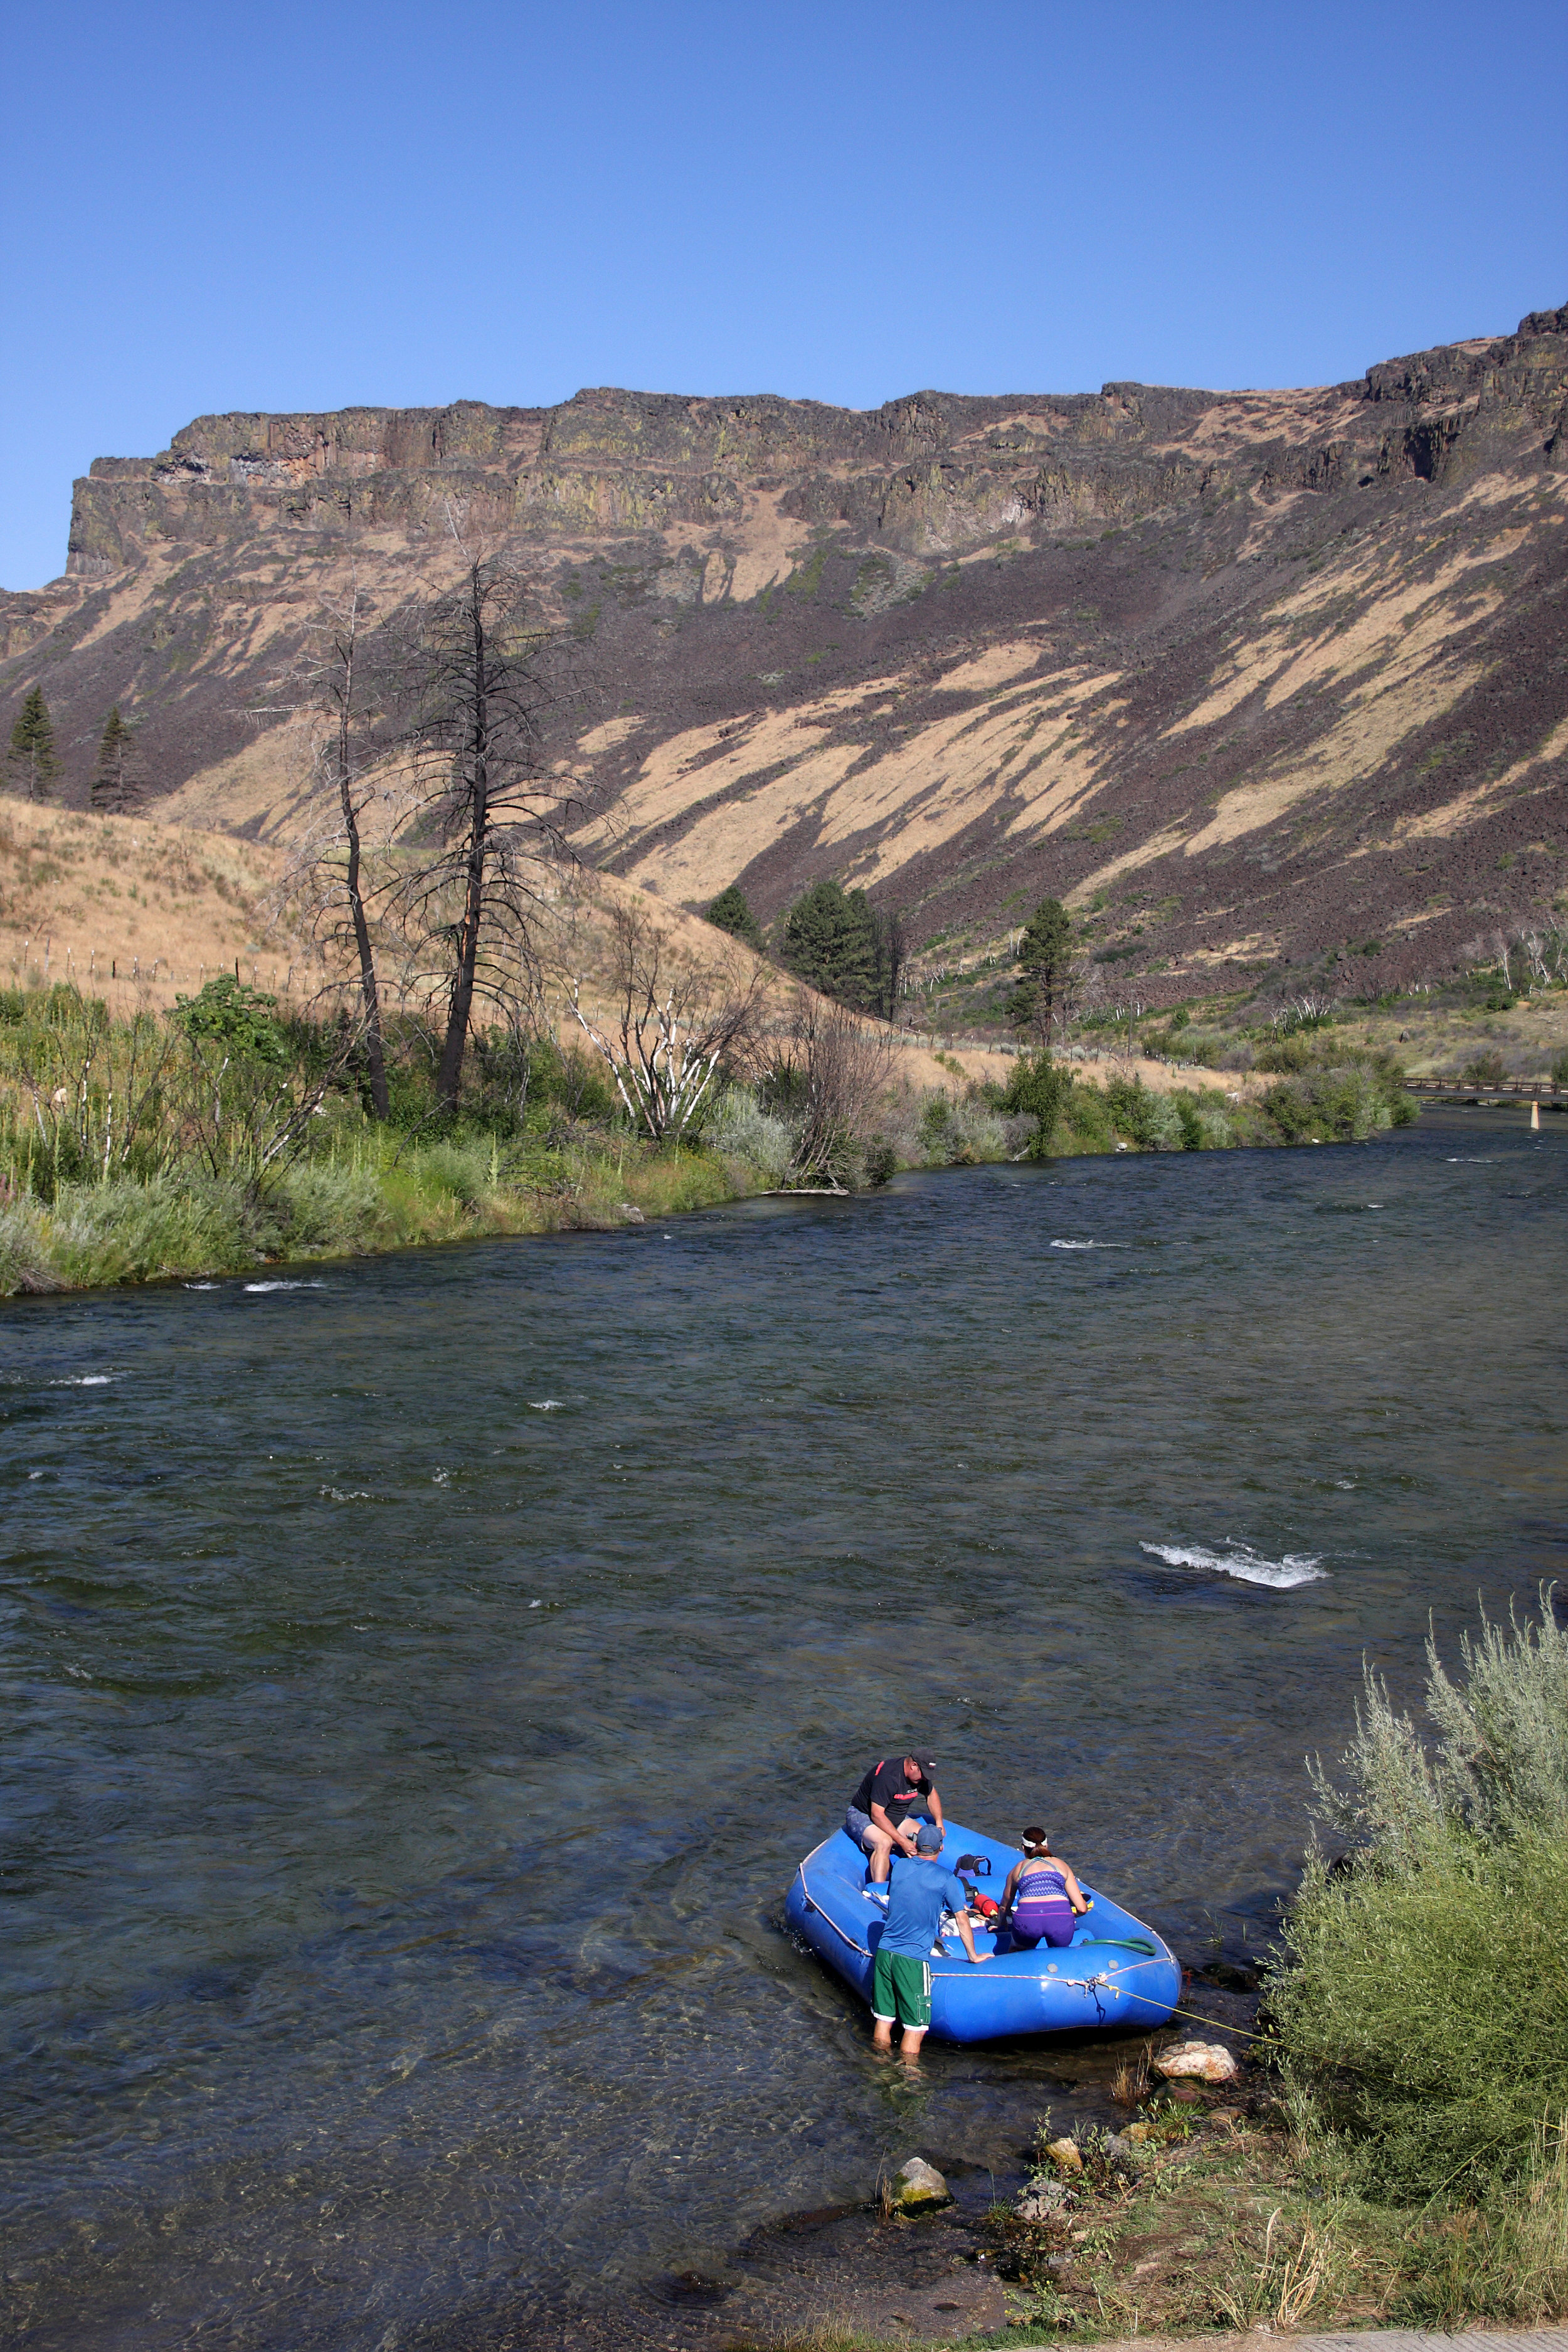 The South Fork of the Boise River is prized for its fishing, whitewater and scenery. A Bureau of Reclamation proposal could raise the Anderson Ranch Dam. (Photo by Greg Stahl)